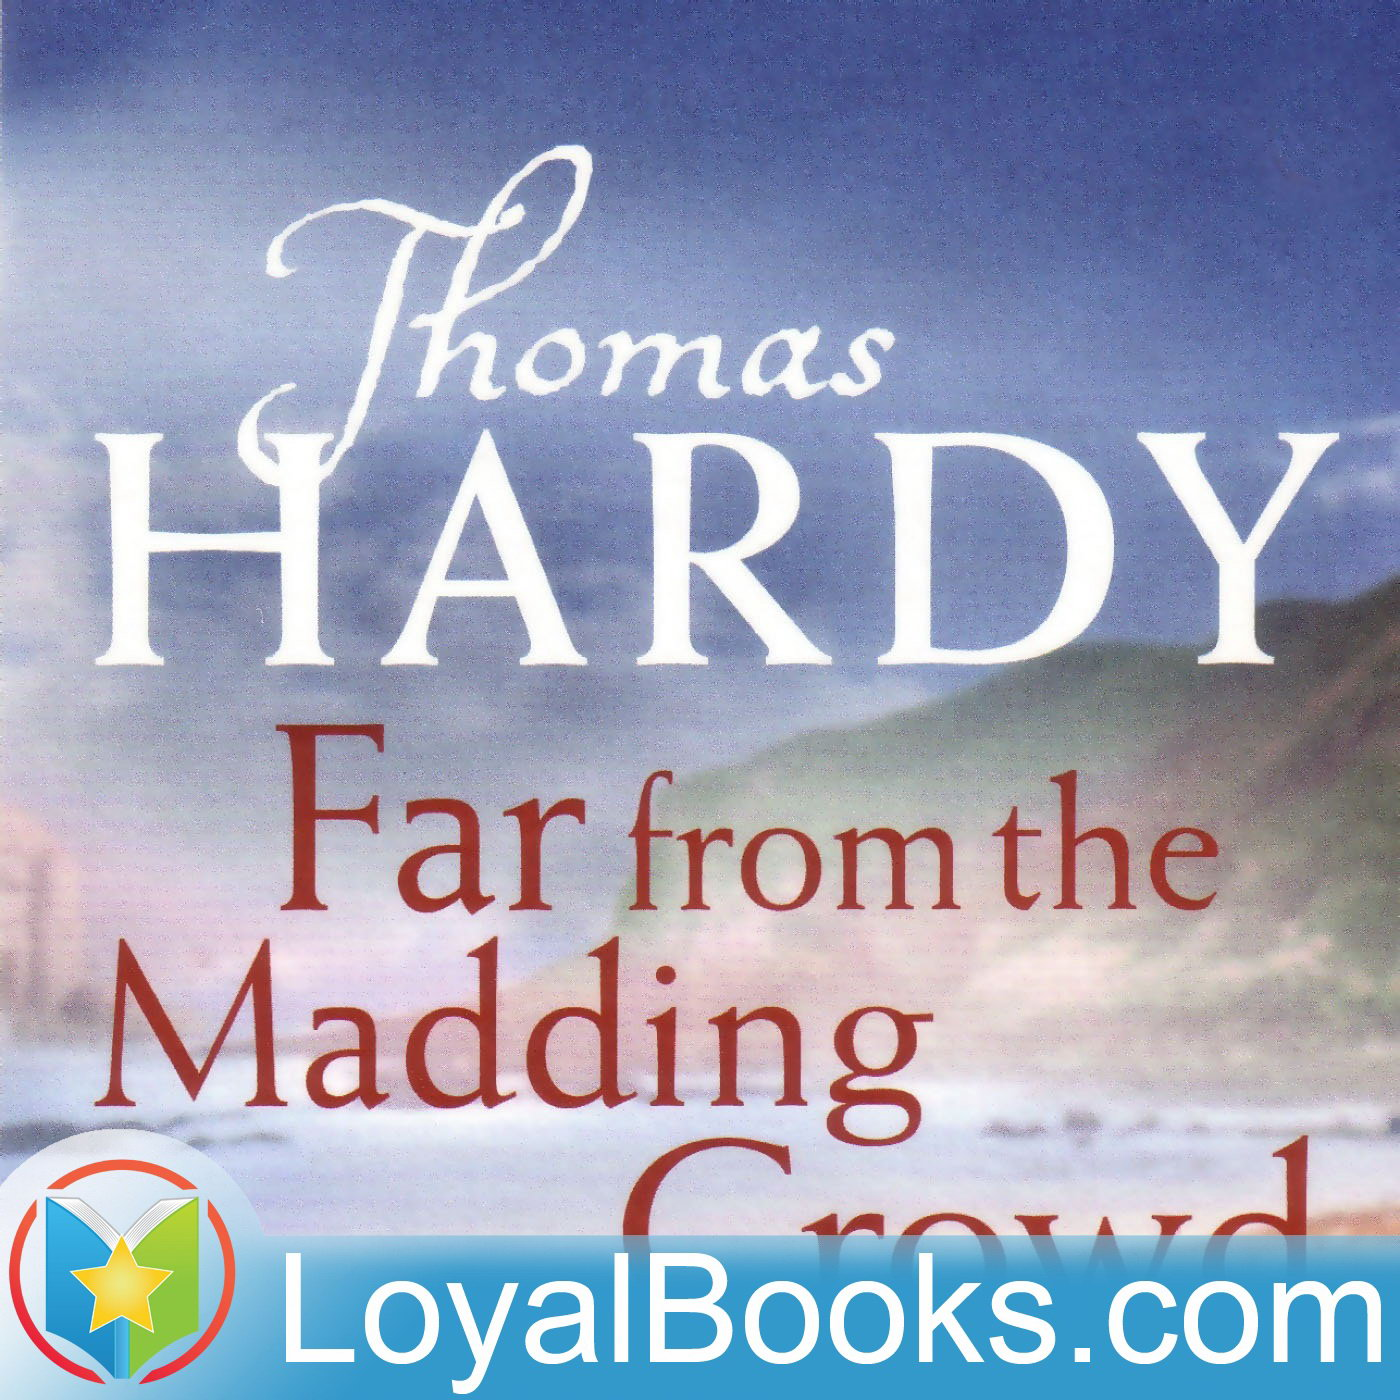 <![CDATA[Far From the Madding Crowd by Thomas Hardy]]>